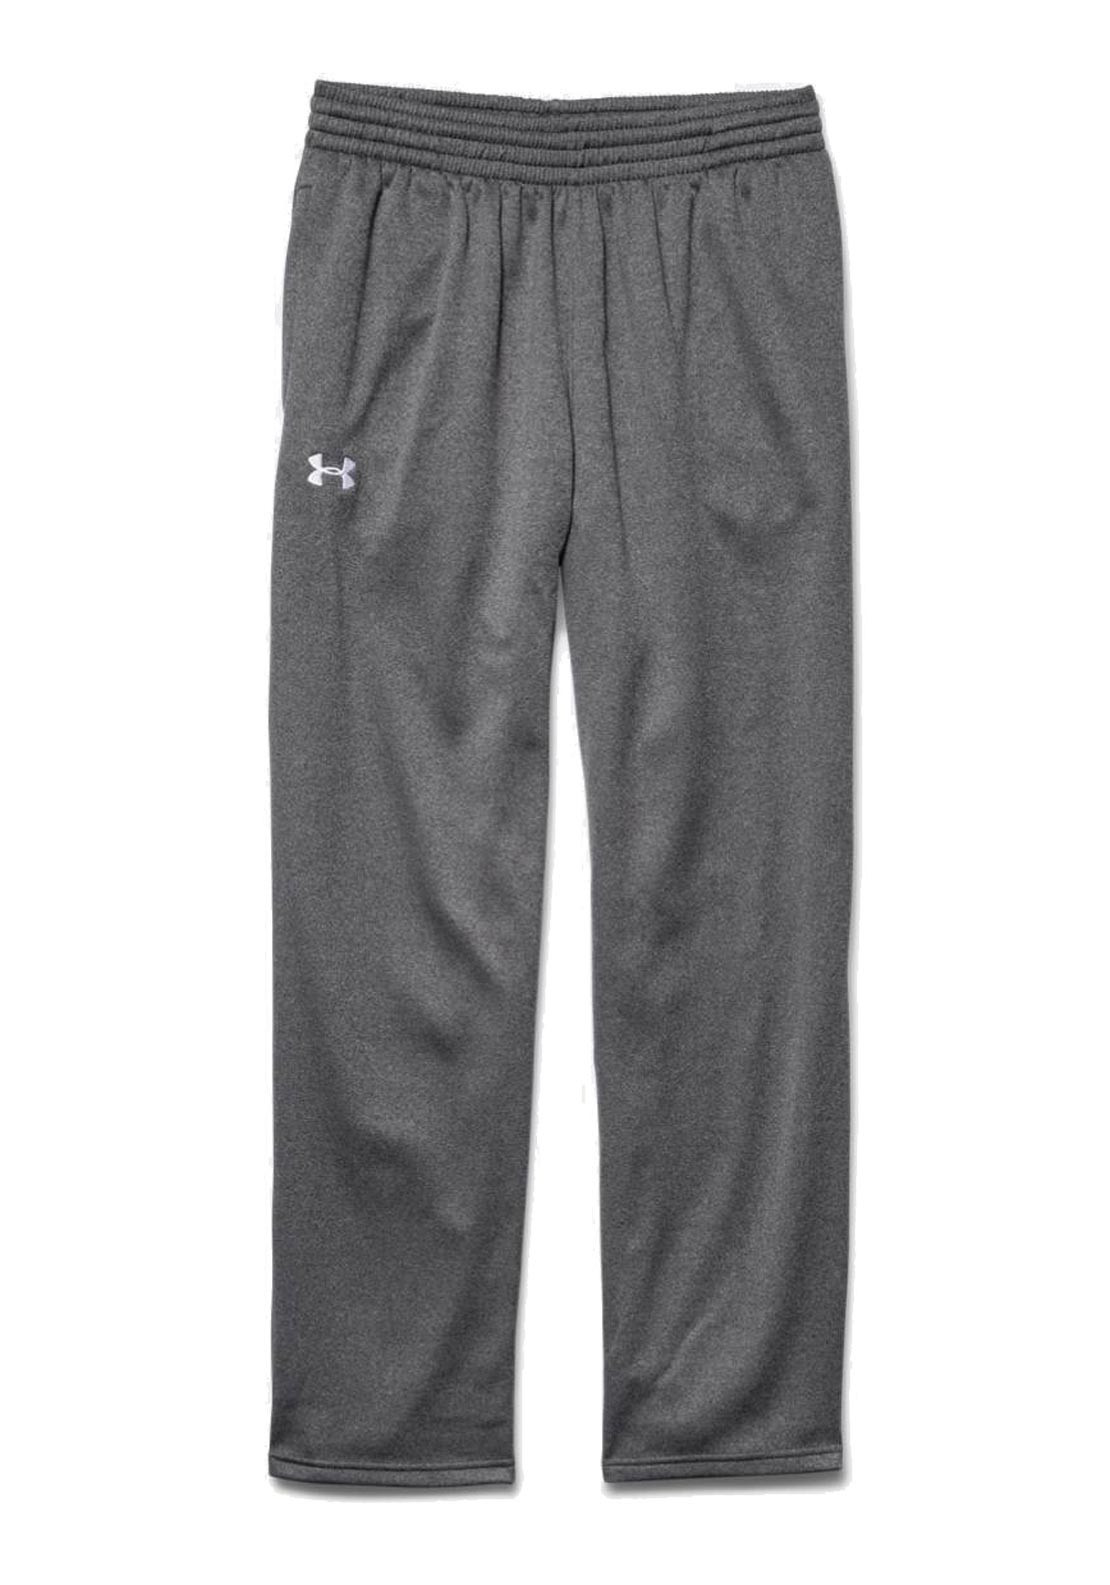 Under Armour Mens Fleece Jogging Bottoms, Grey